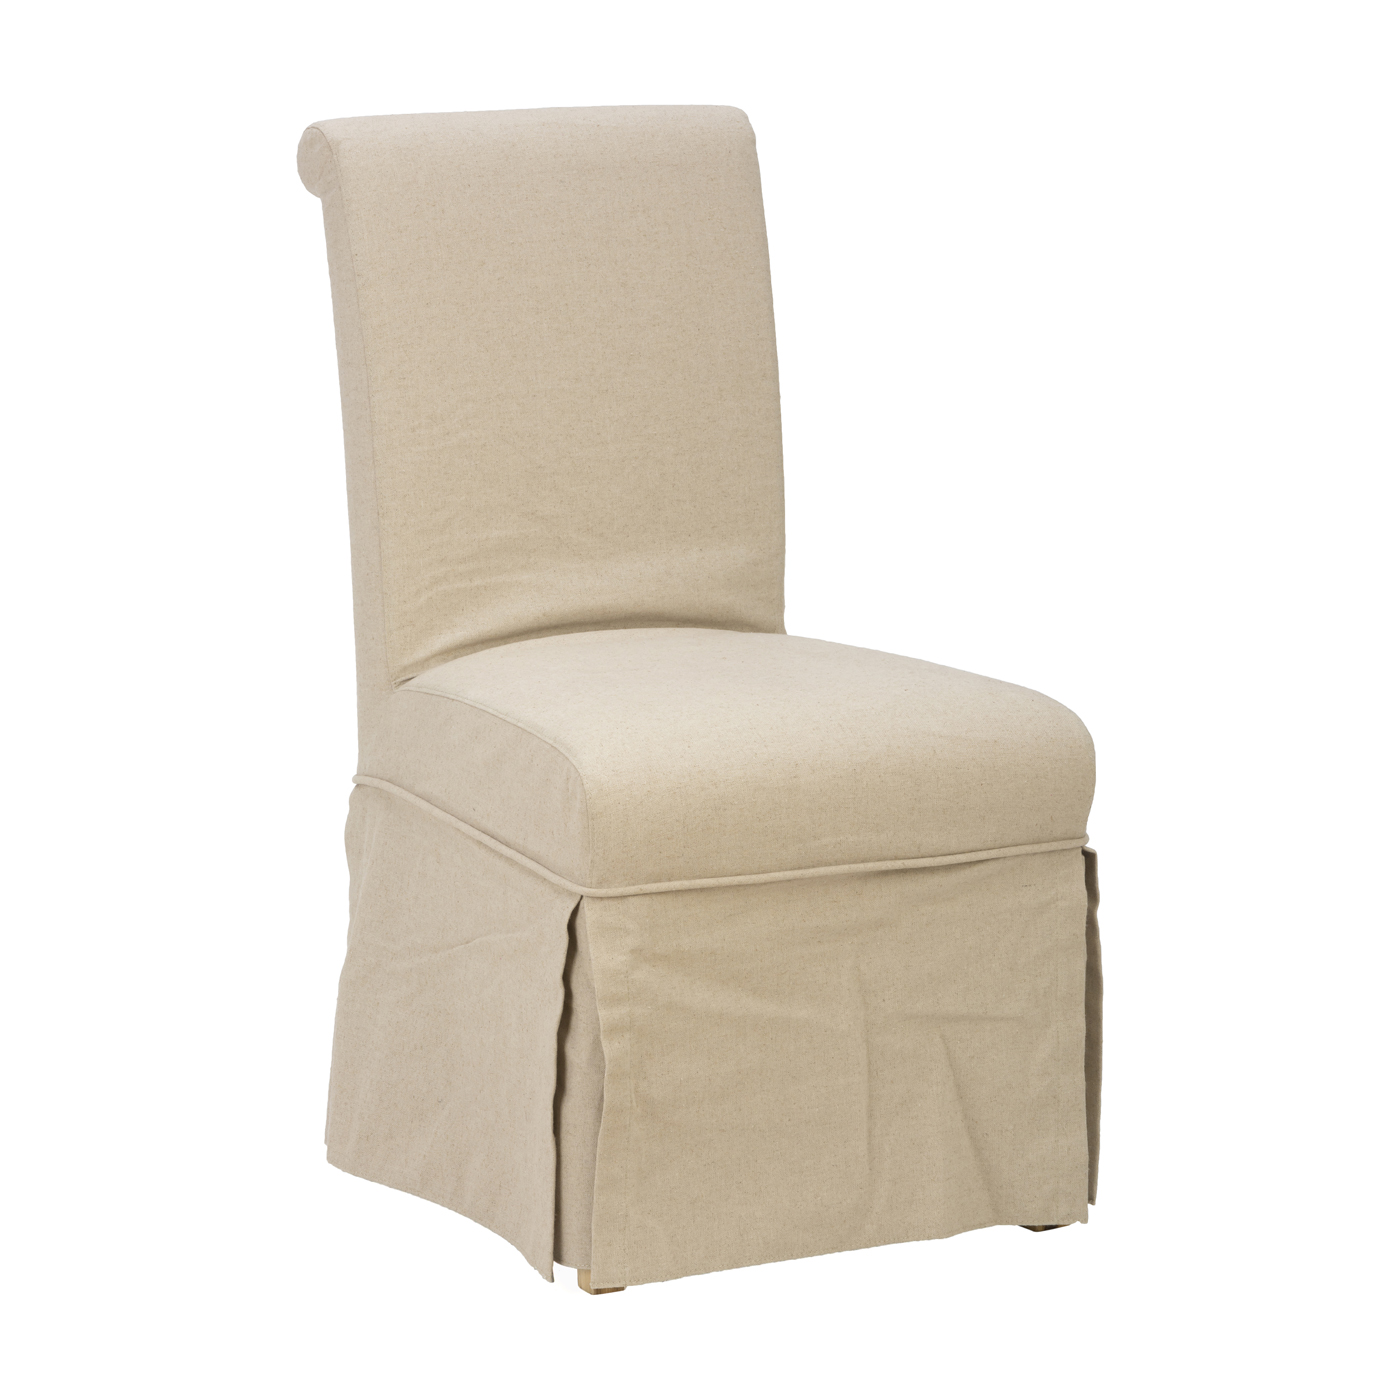 decor parson for chair and chairs latest design dining unique covers room parsons slipcover home fit sure slipcovers